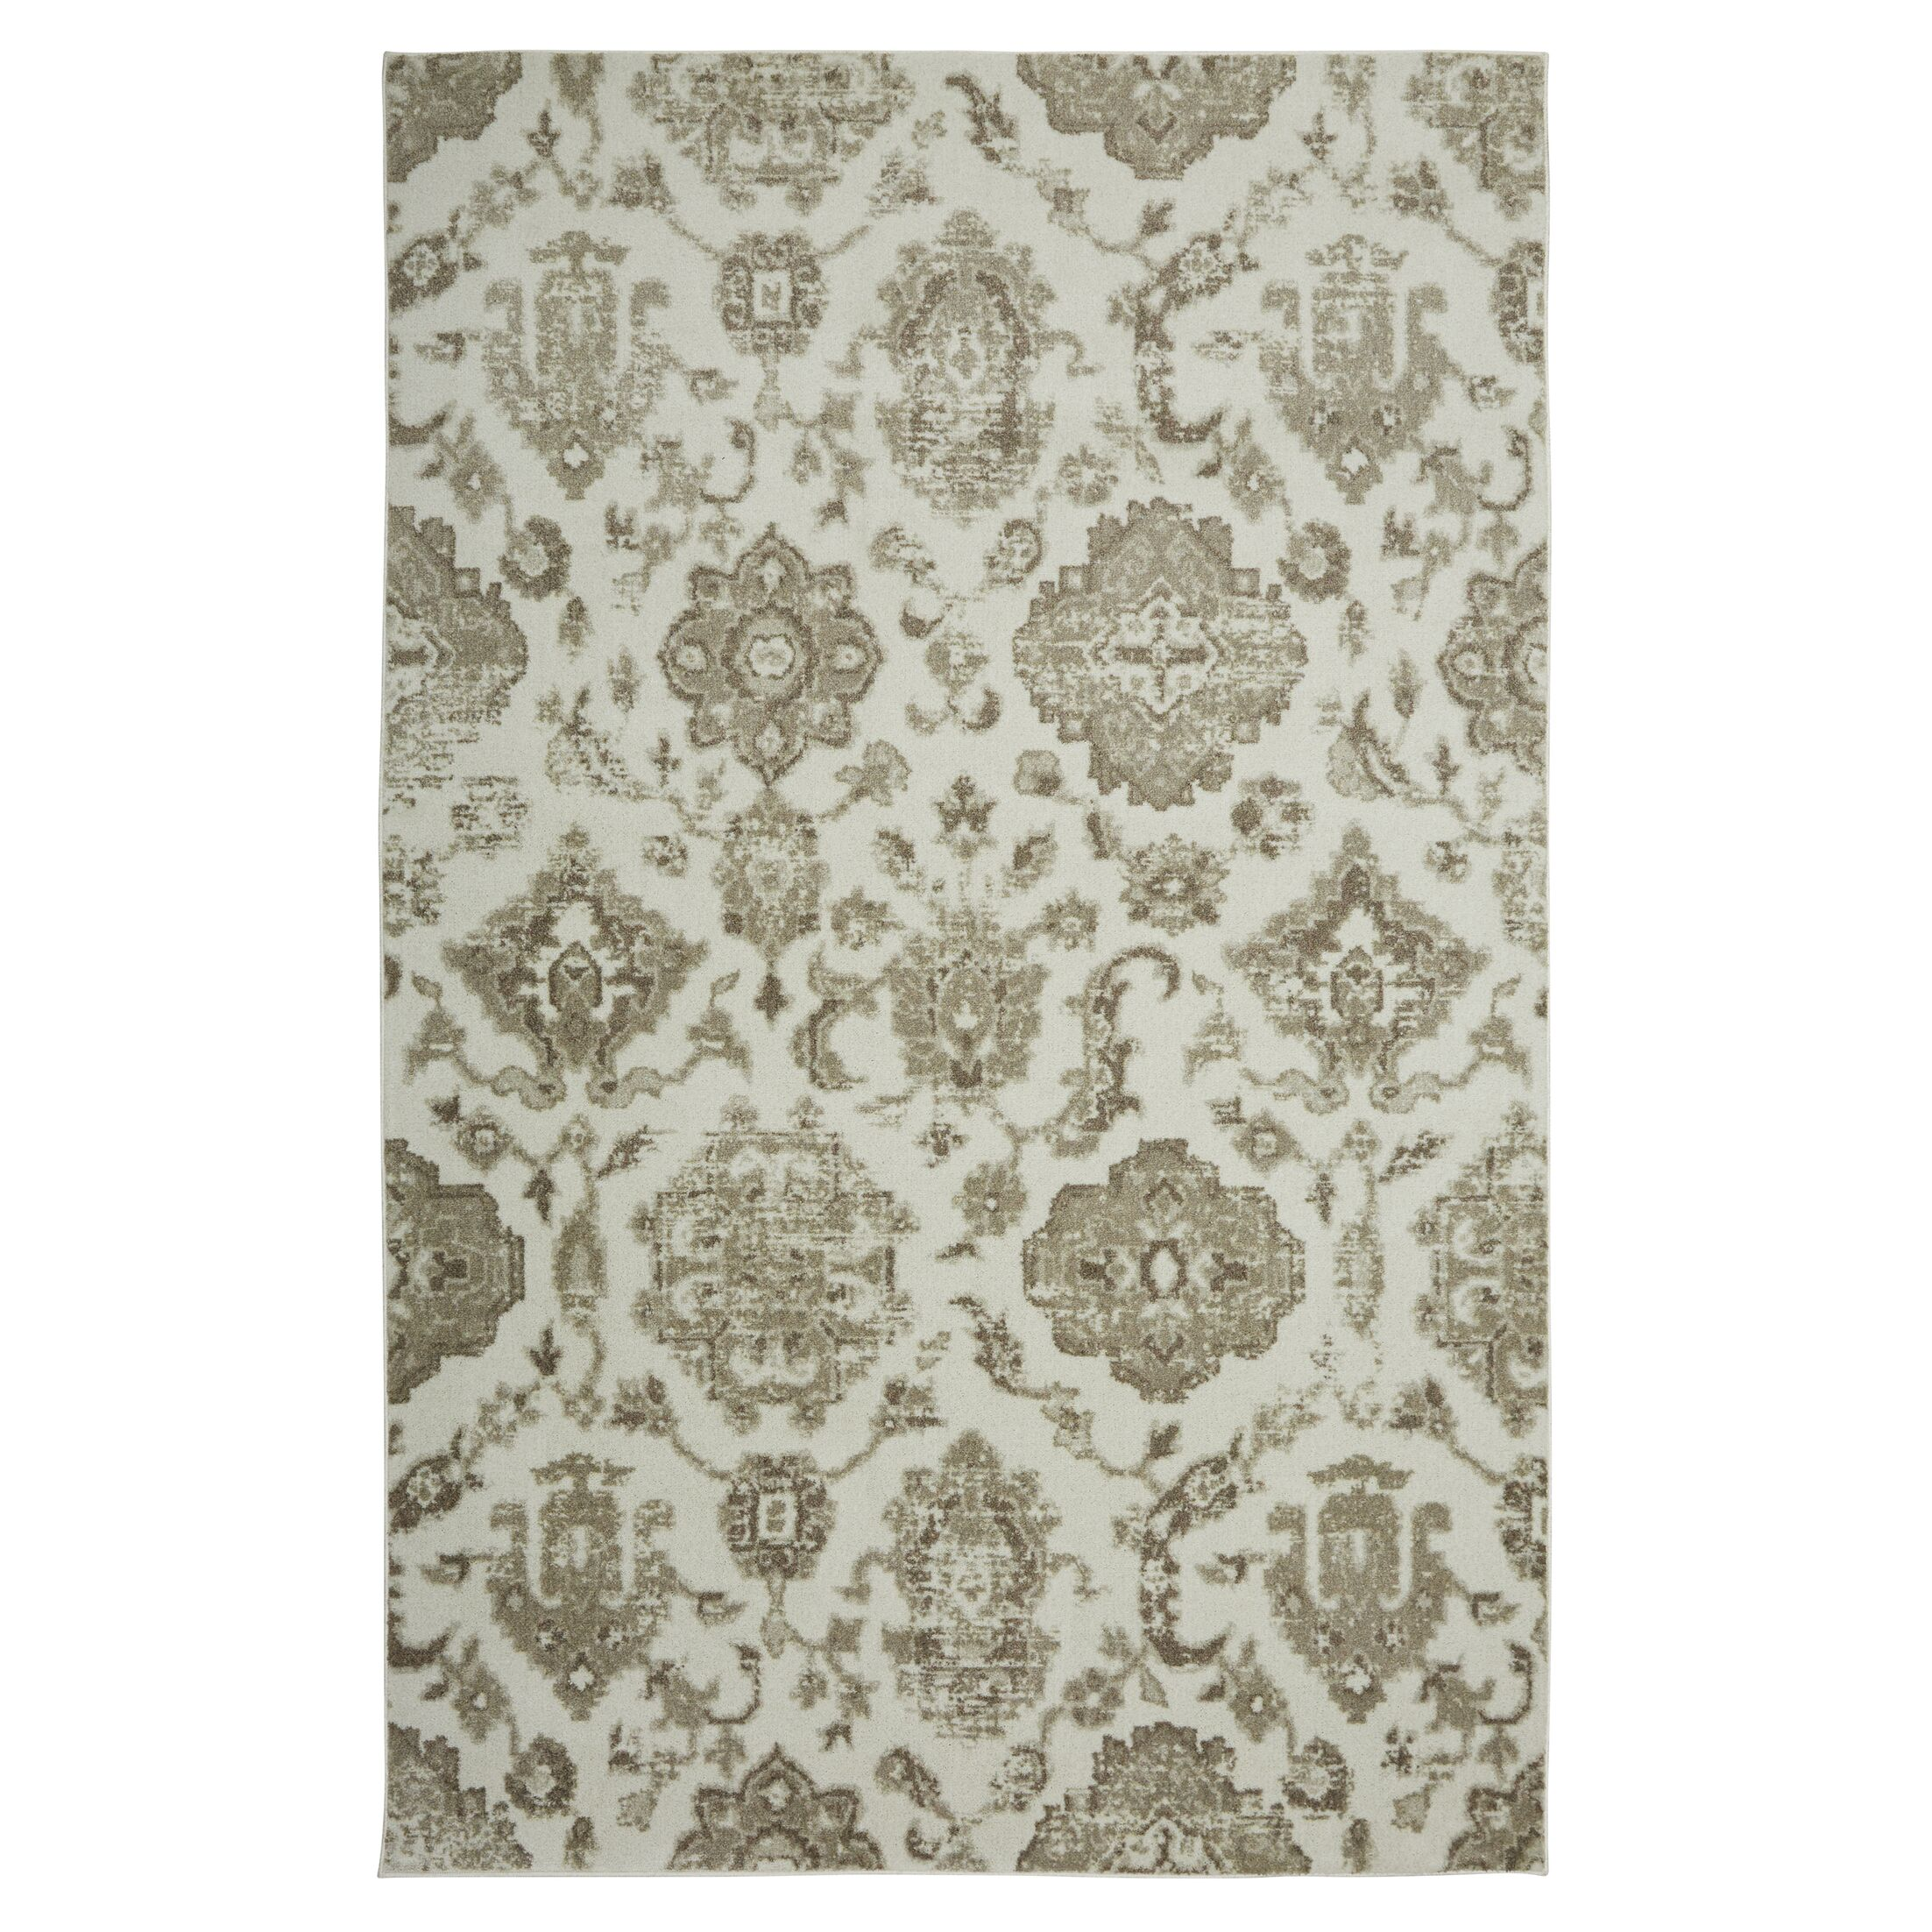 Mohawk Linen/Green/Beige Area Rug Rug Size: Rectangle 8' x 10'